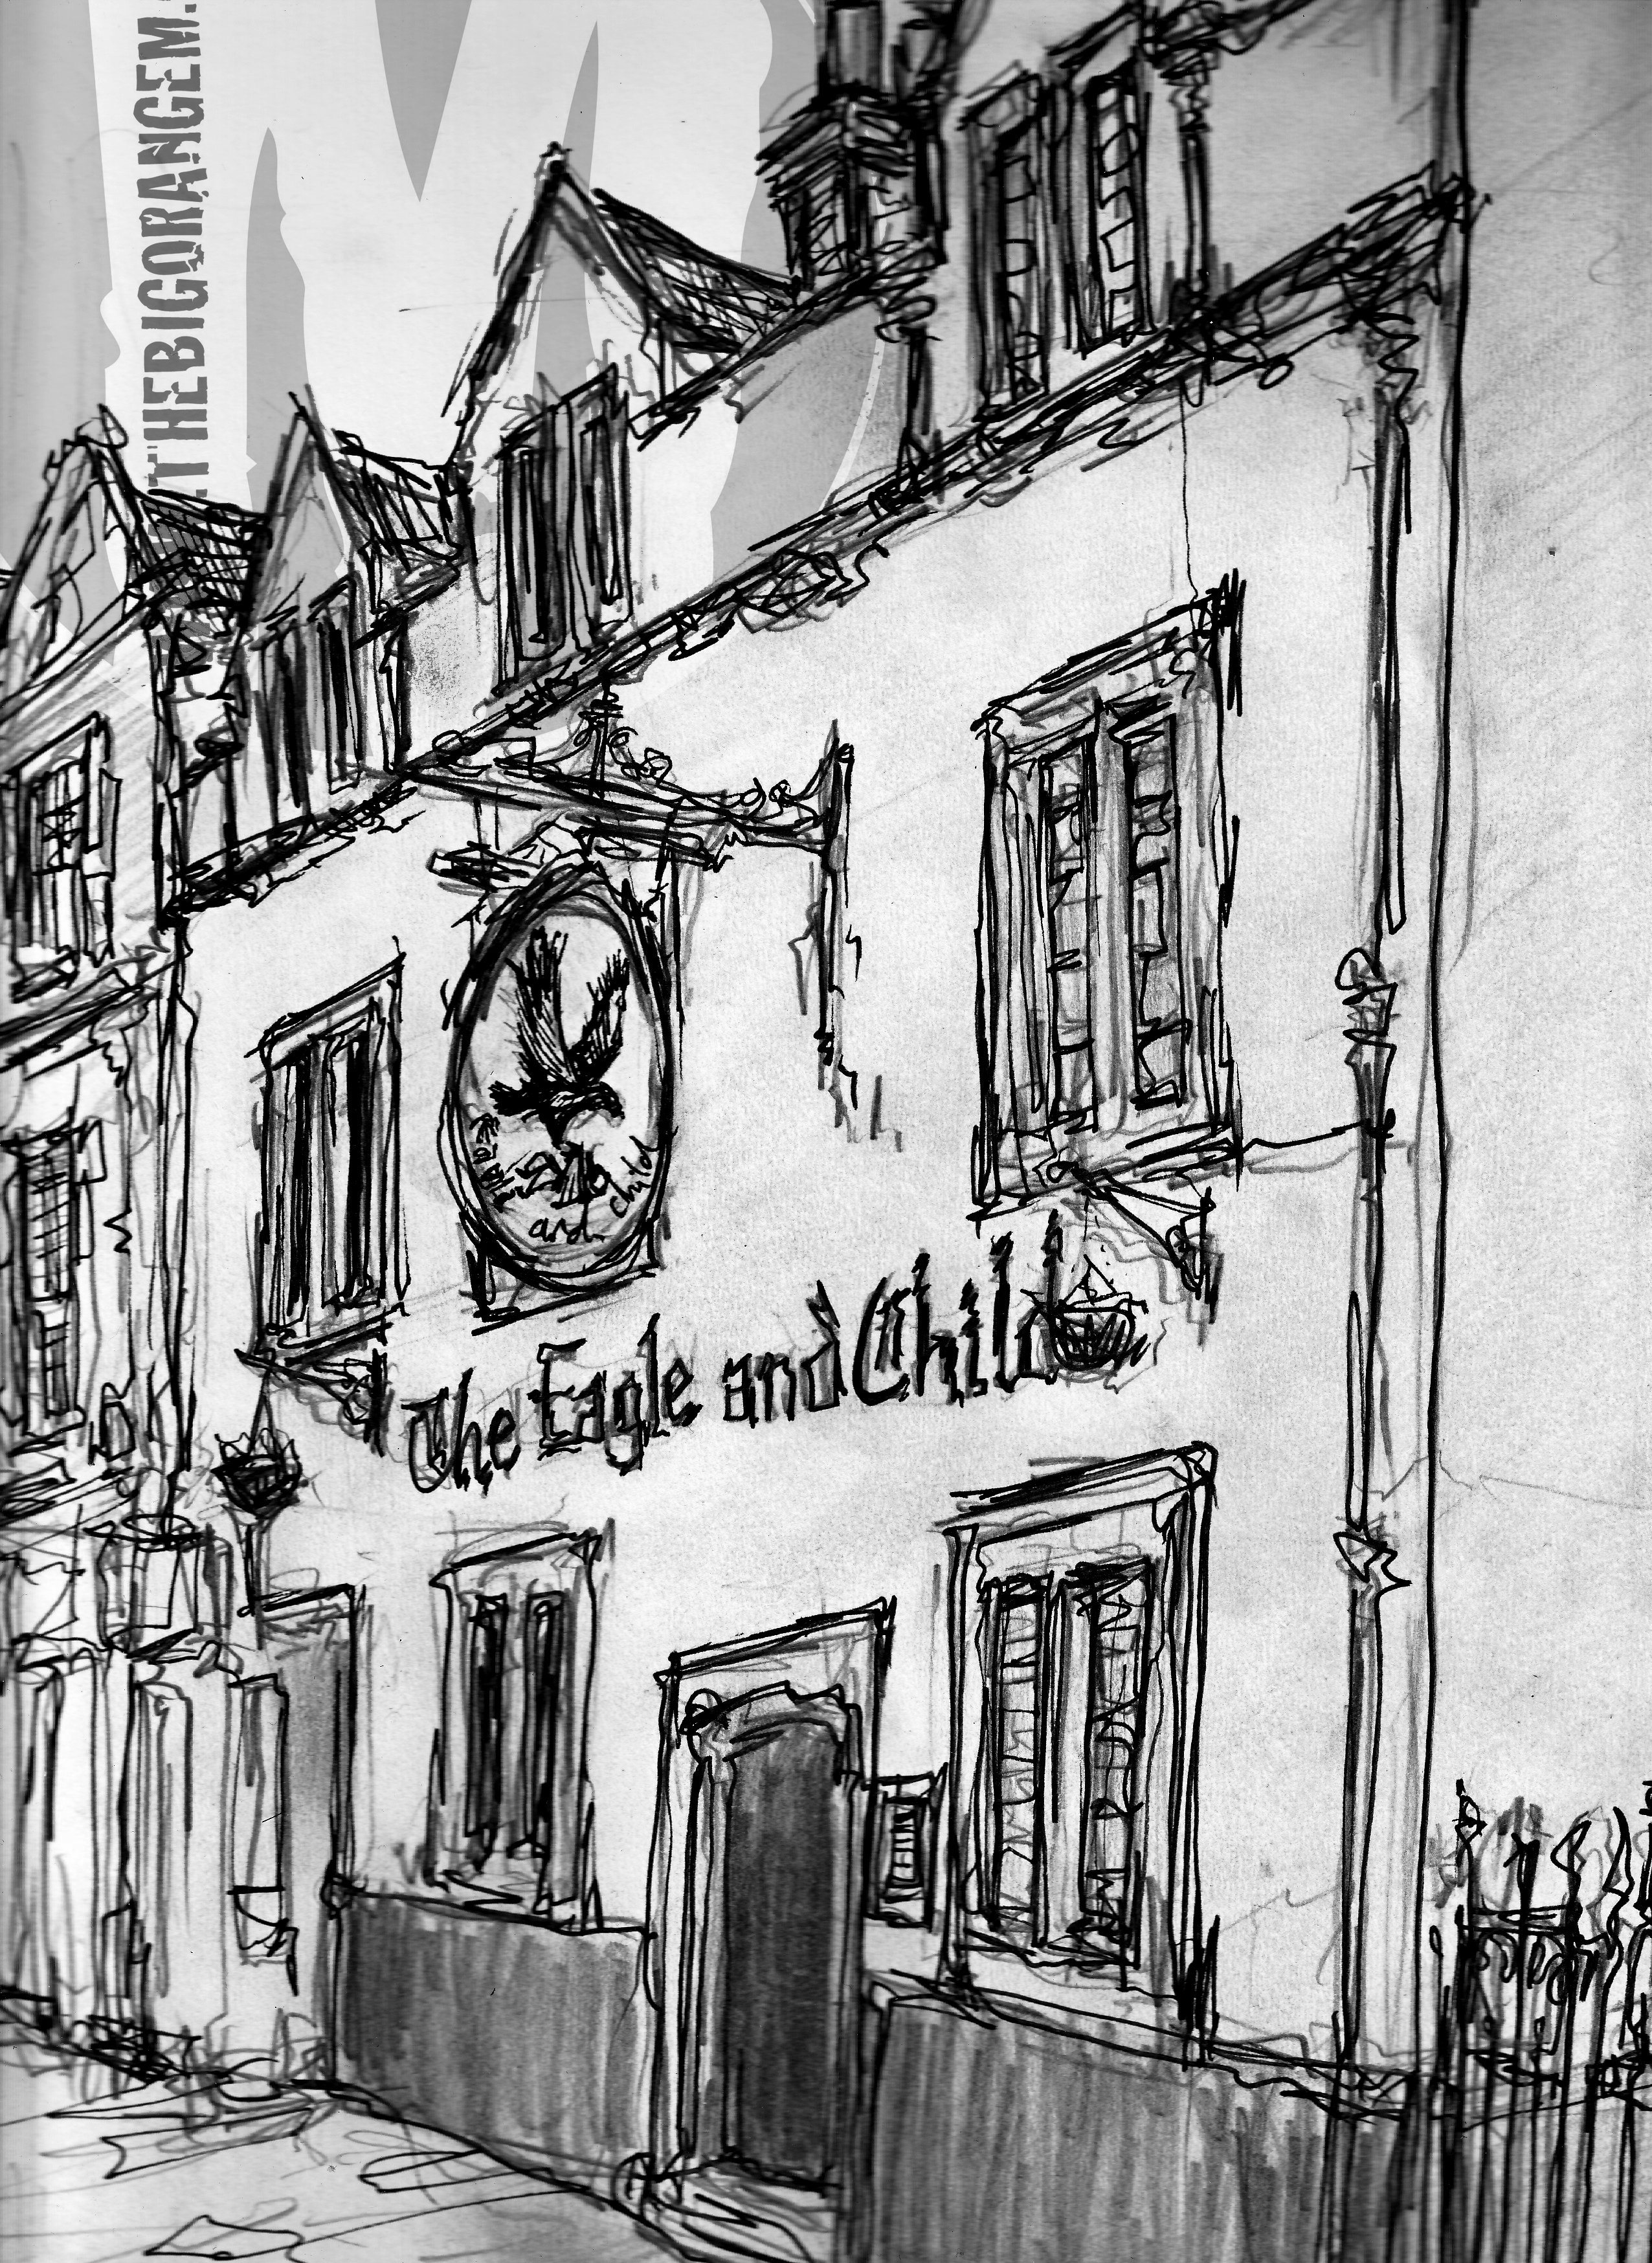 The Eagle & Child Inn.